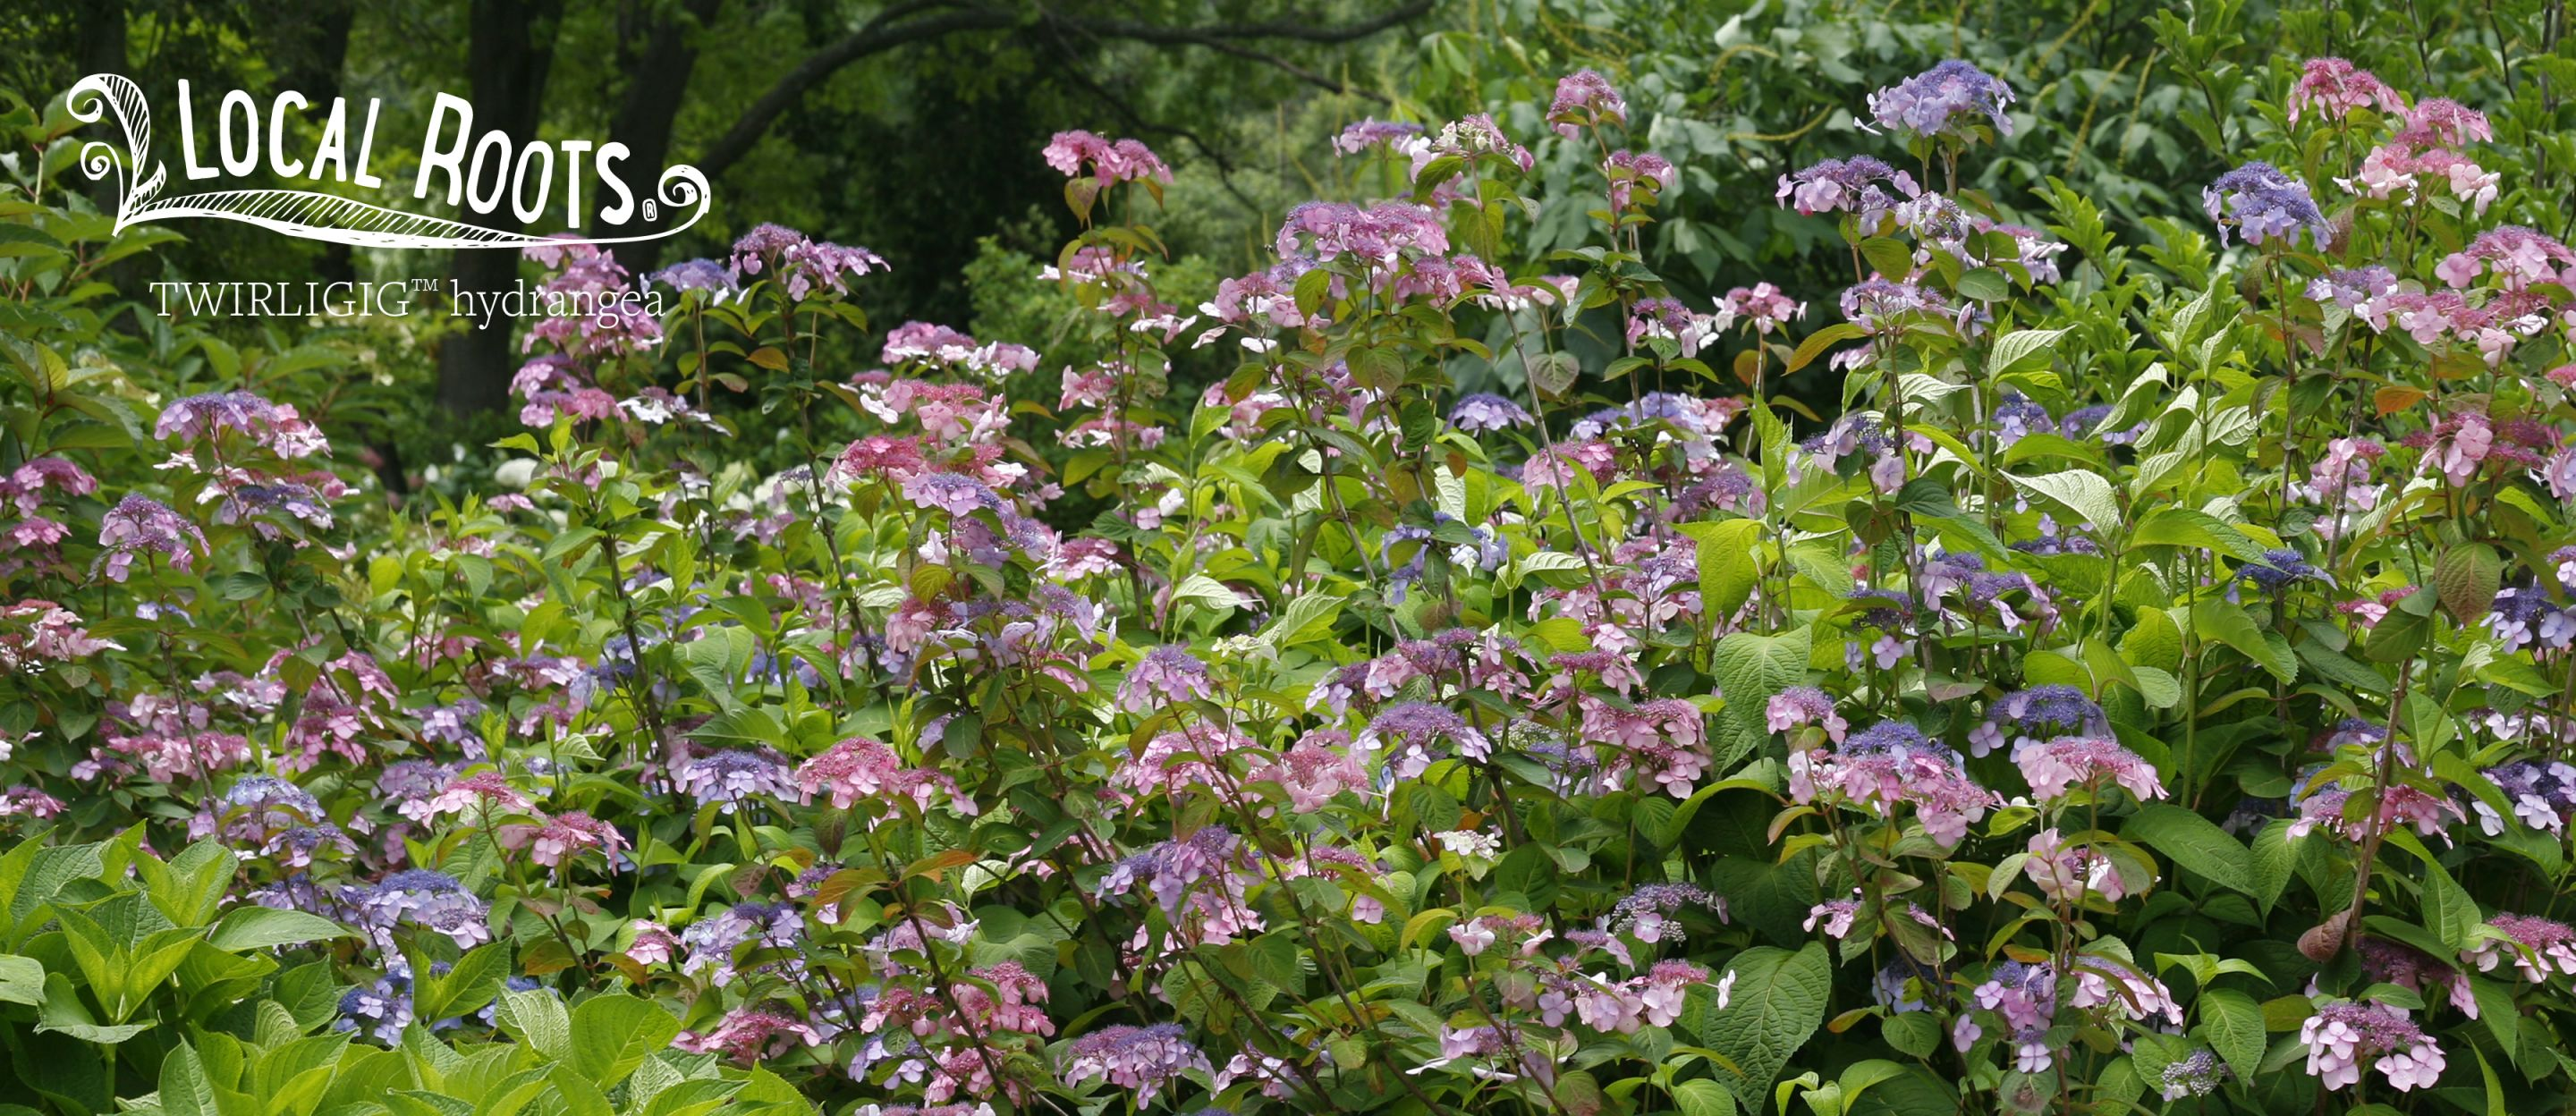 Local Roots Variety Twirligig Hydrangea Serrata